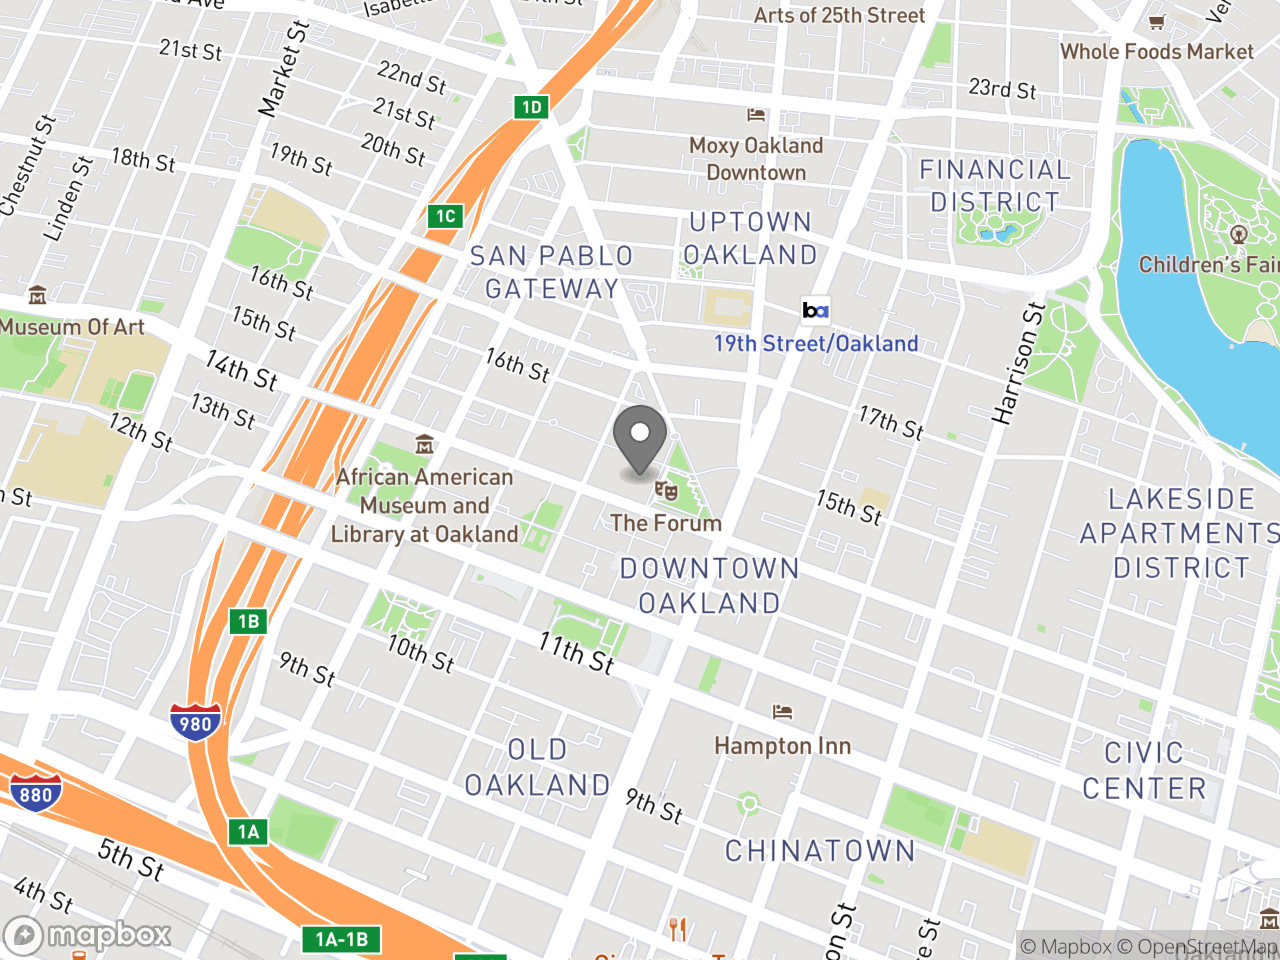 Map image for 11-4-19 PAAC Meeting, located at 1 Frank H. Ogawa Plaza in Oakland, CA 94612